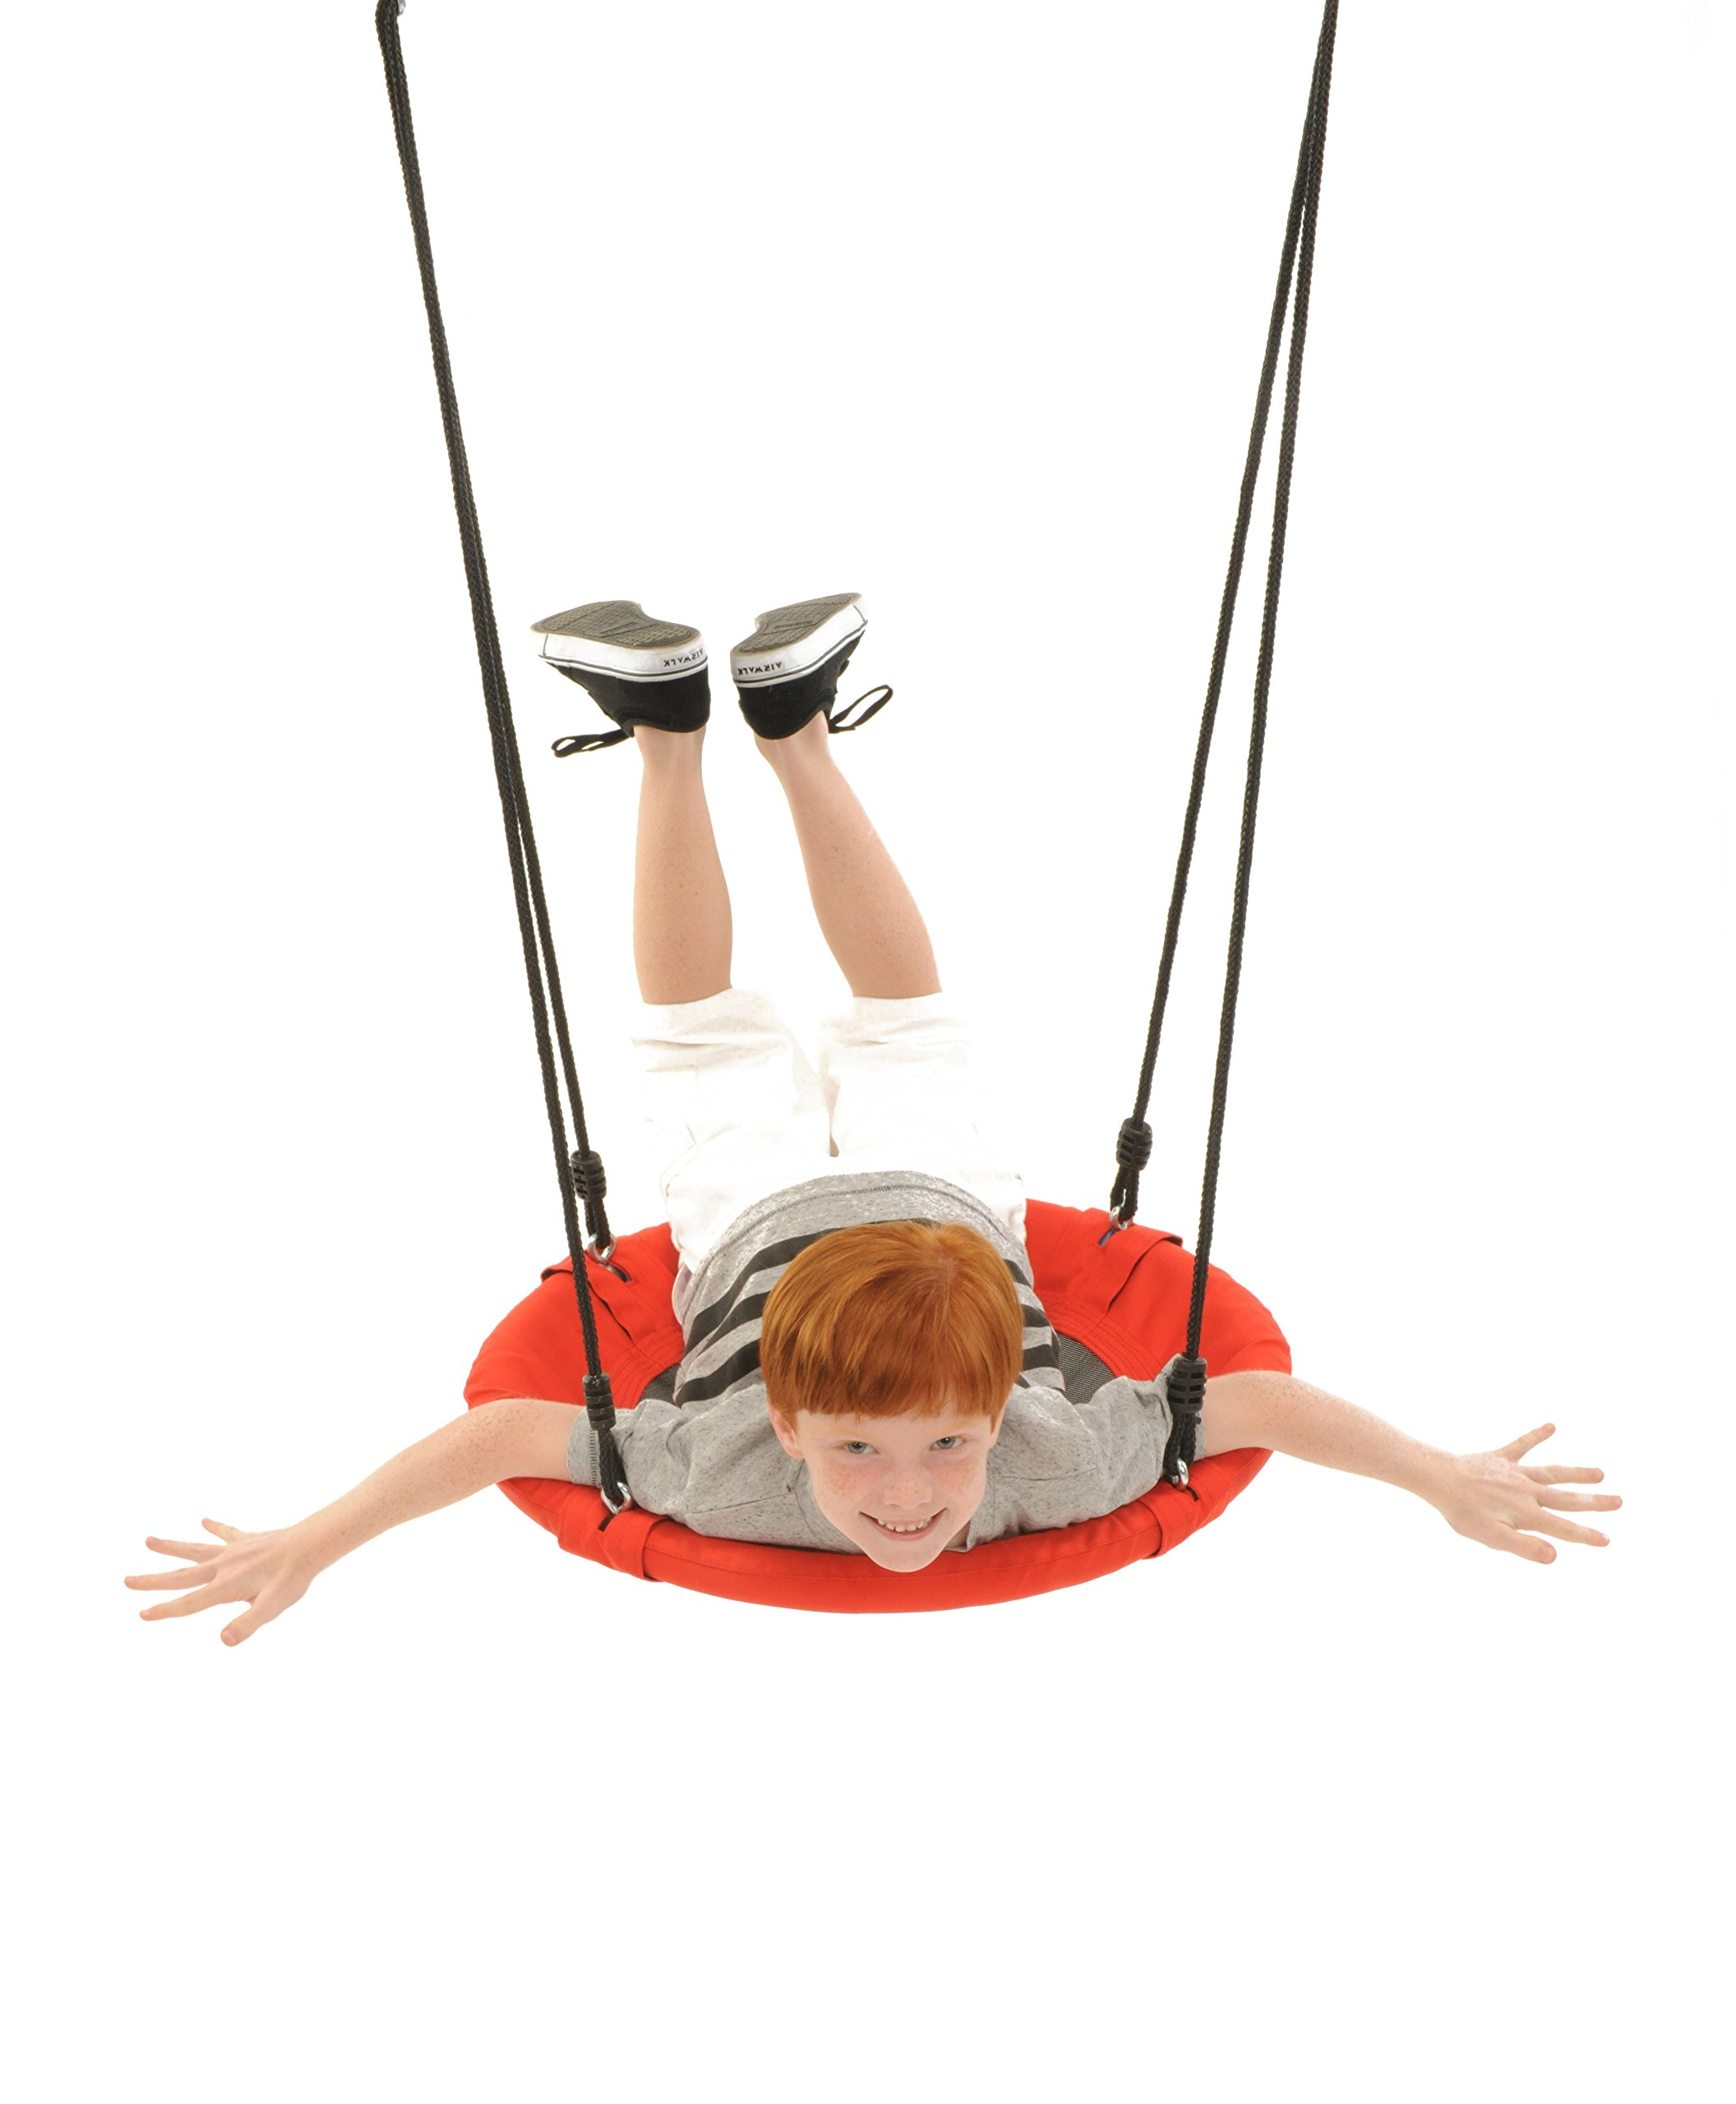 Swinging Monkey Products Fabric Saucer Spinner Swing, Red or Gray - Fun! Easy Install on Swing Set or Tree, Nylon Rope with Padded Steel Frame by Swinging Monkey Products (Image #2)